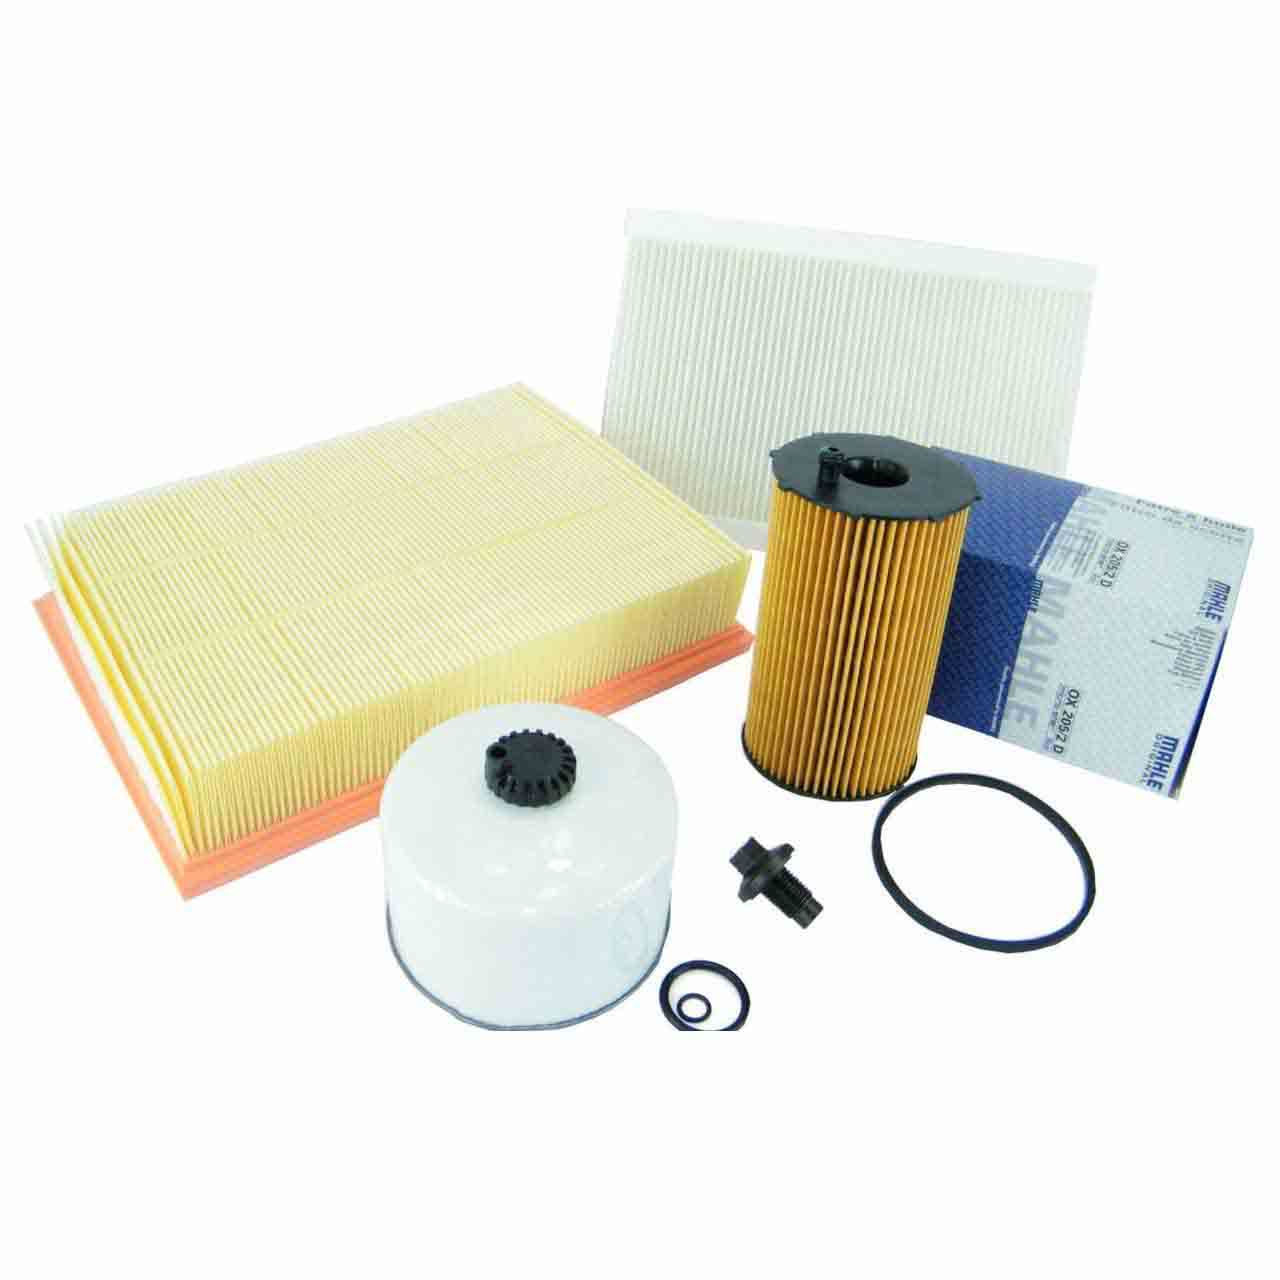 Kit Filtro Aria Carburante Olio Motore Diesel Range Rover Sport 2.7 Tdv6 Discovery 3-4 Land Rover GR2-07257